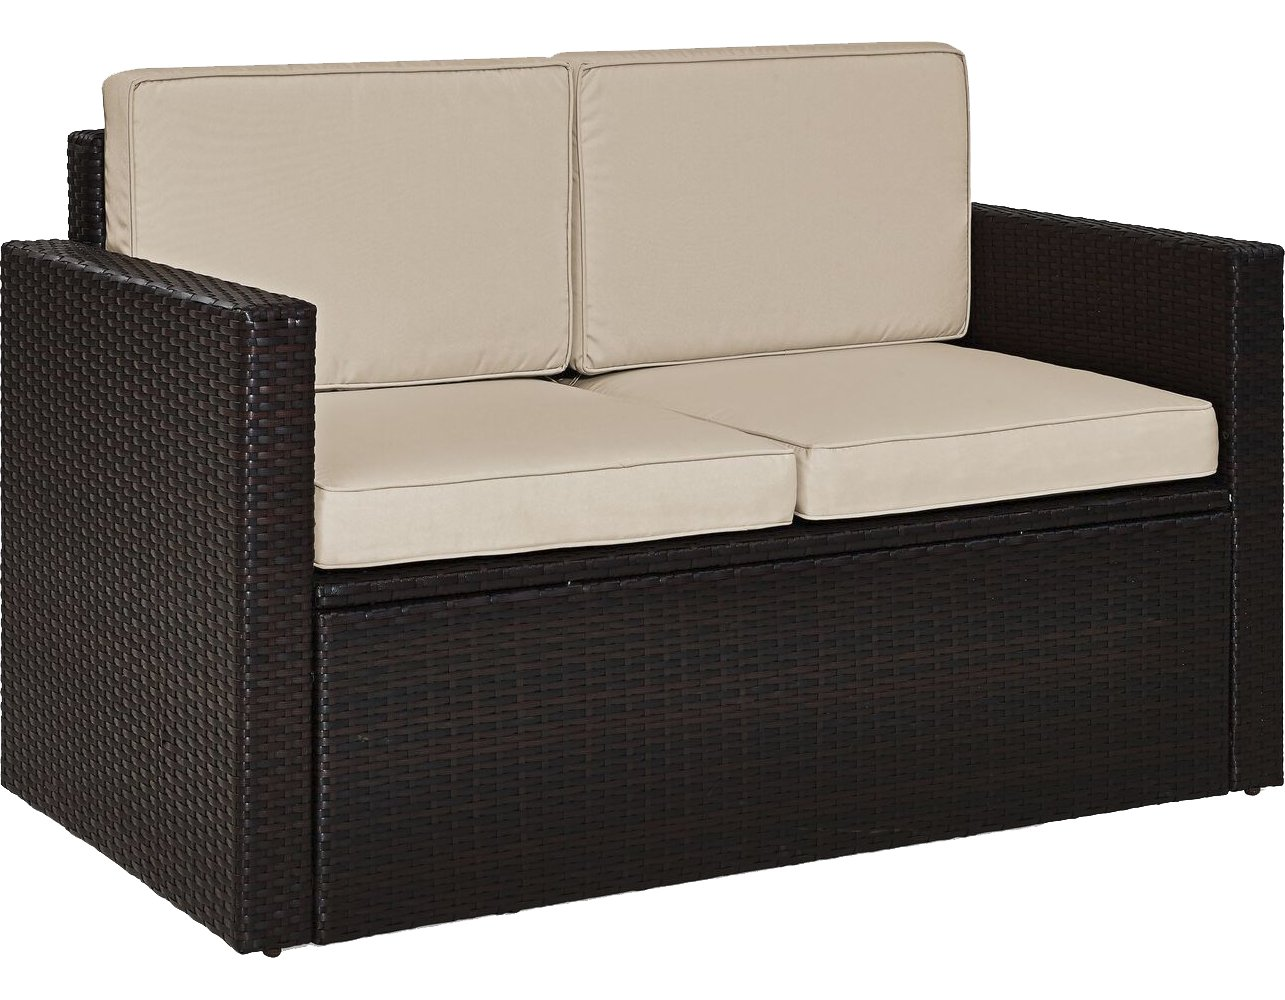 Crosley Furniture KO70092BR-SA Palm Harbor Outdoor Wicker Loveseat, Brown with Sand Cushions